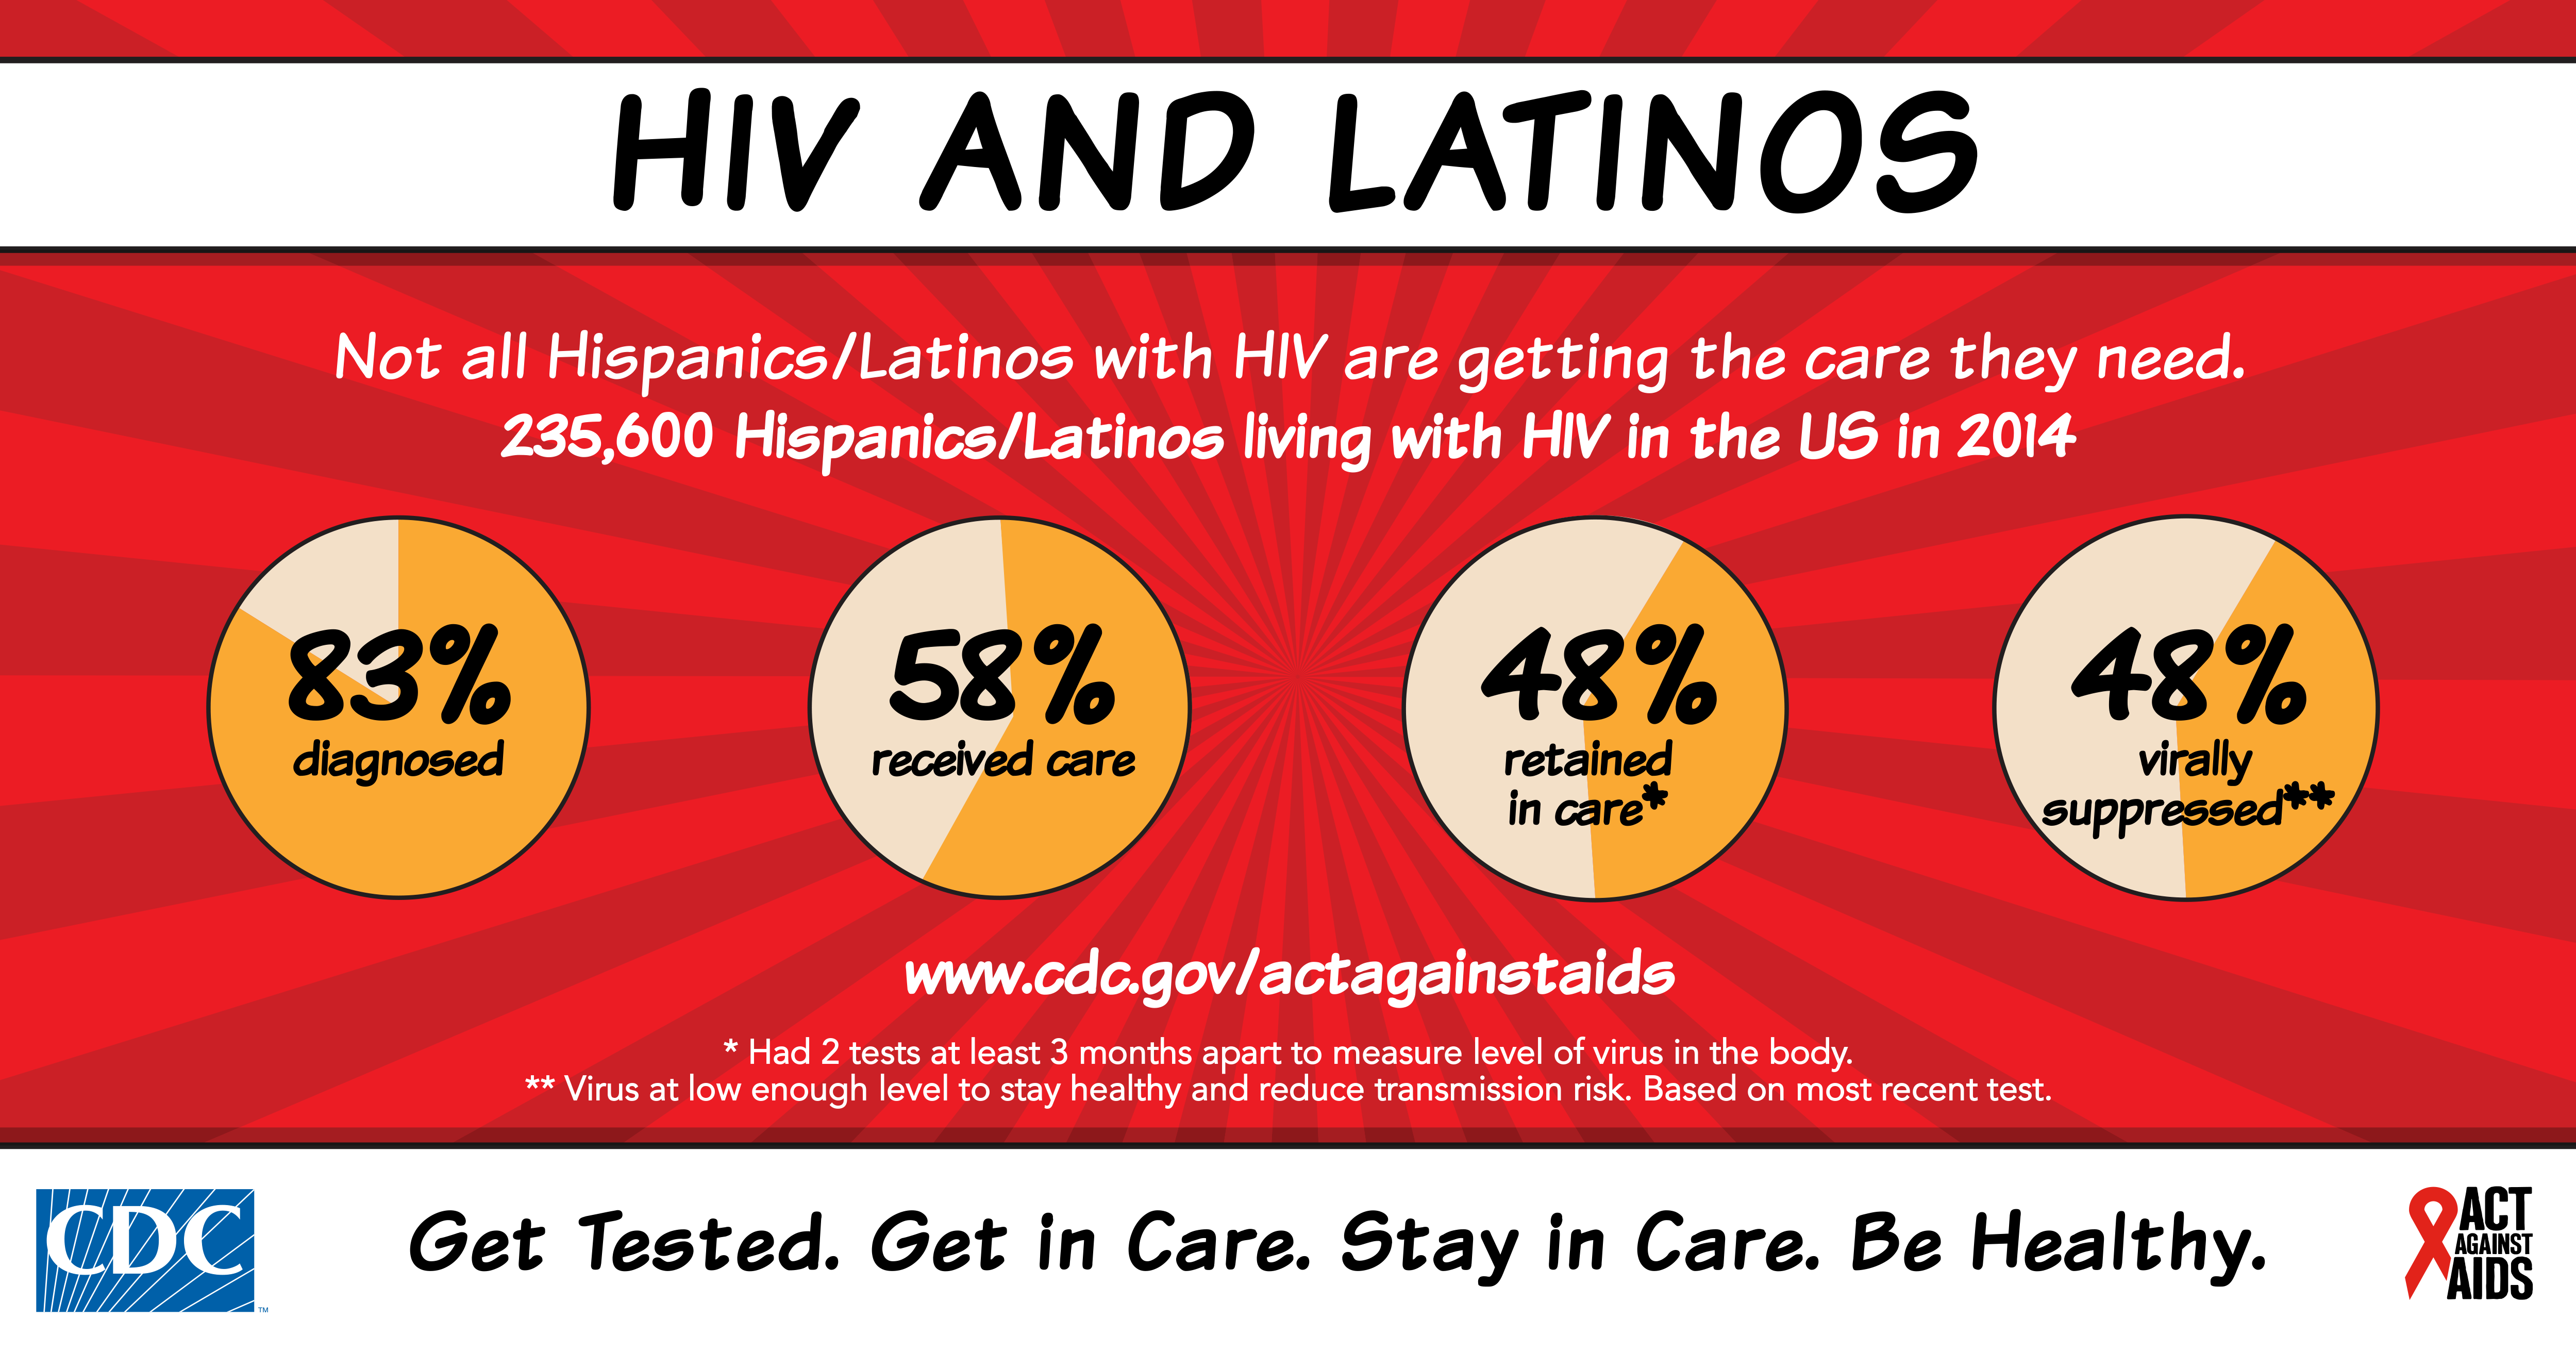 Latino MSM and HIV